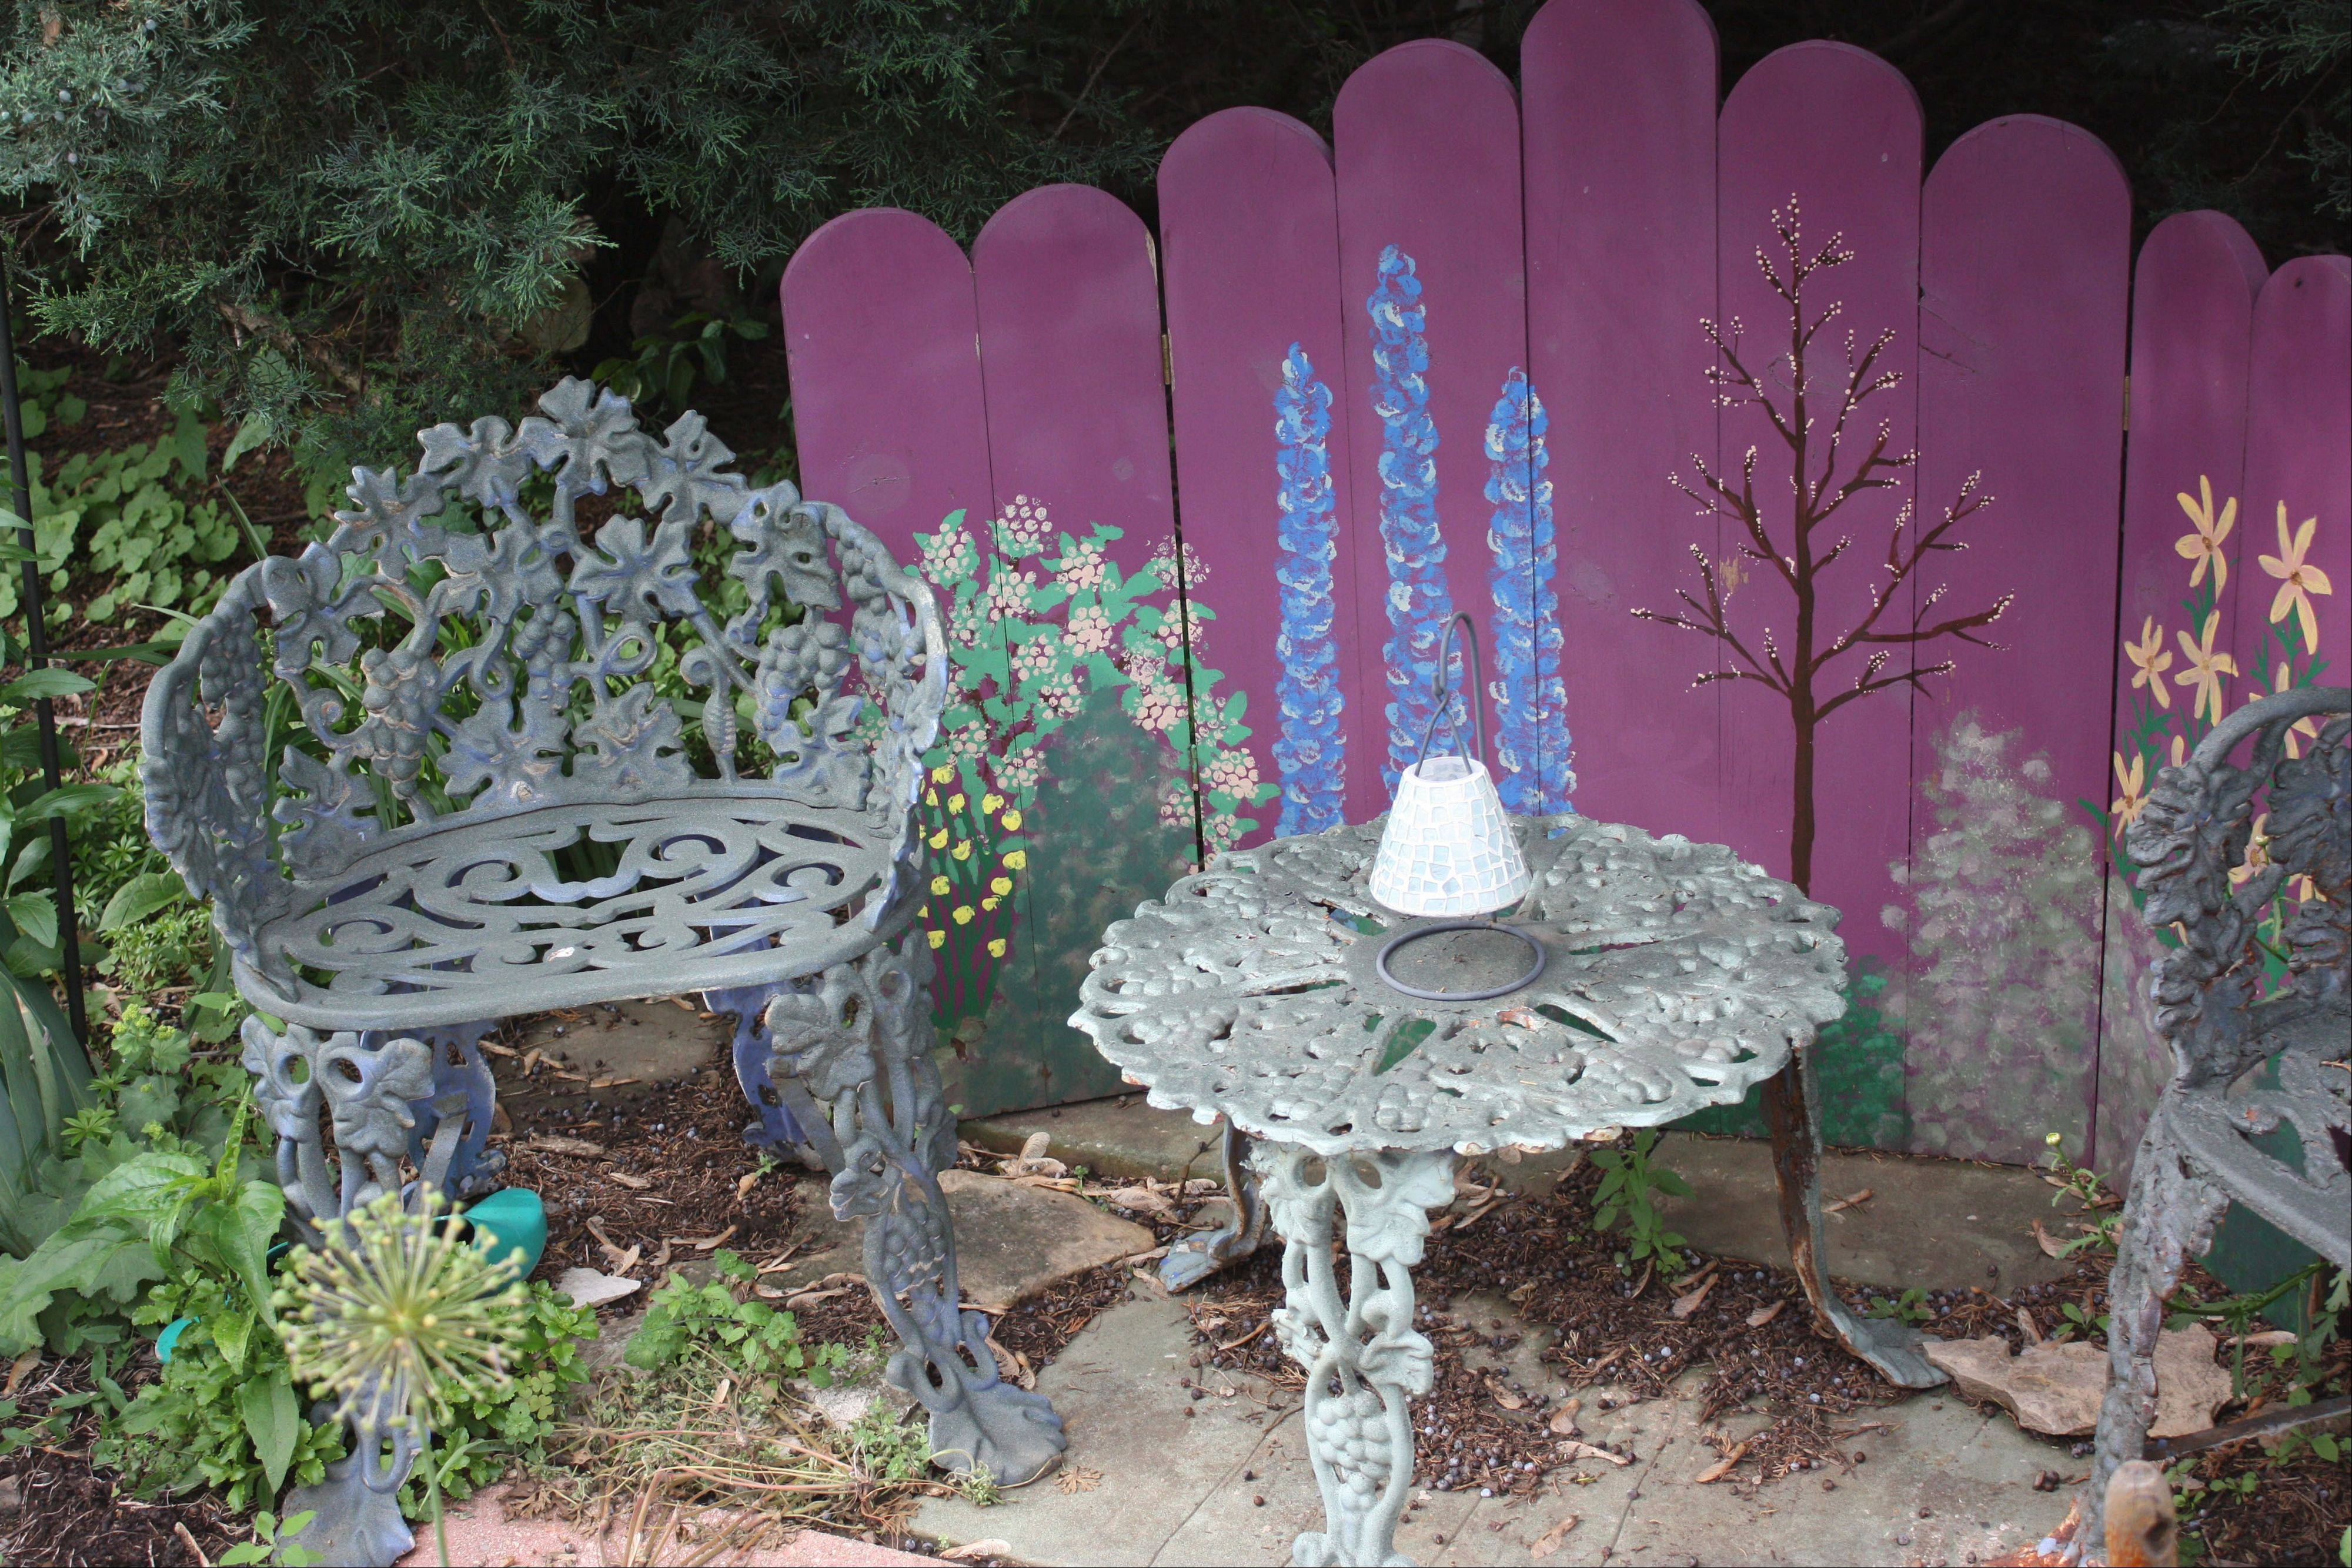 A floral painted screen that frames two metal patio chairs and a table is an inviting place to enjoy the Buehler garden.